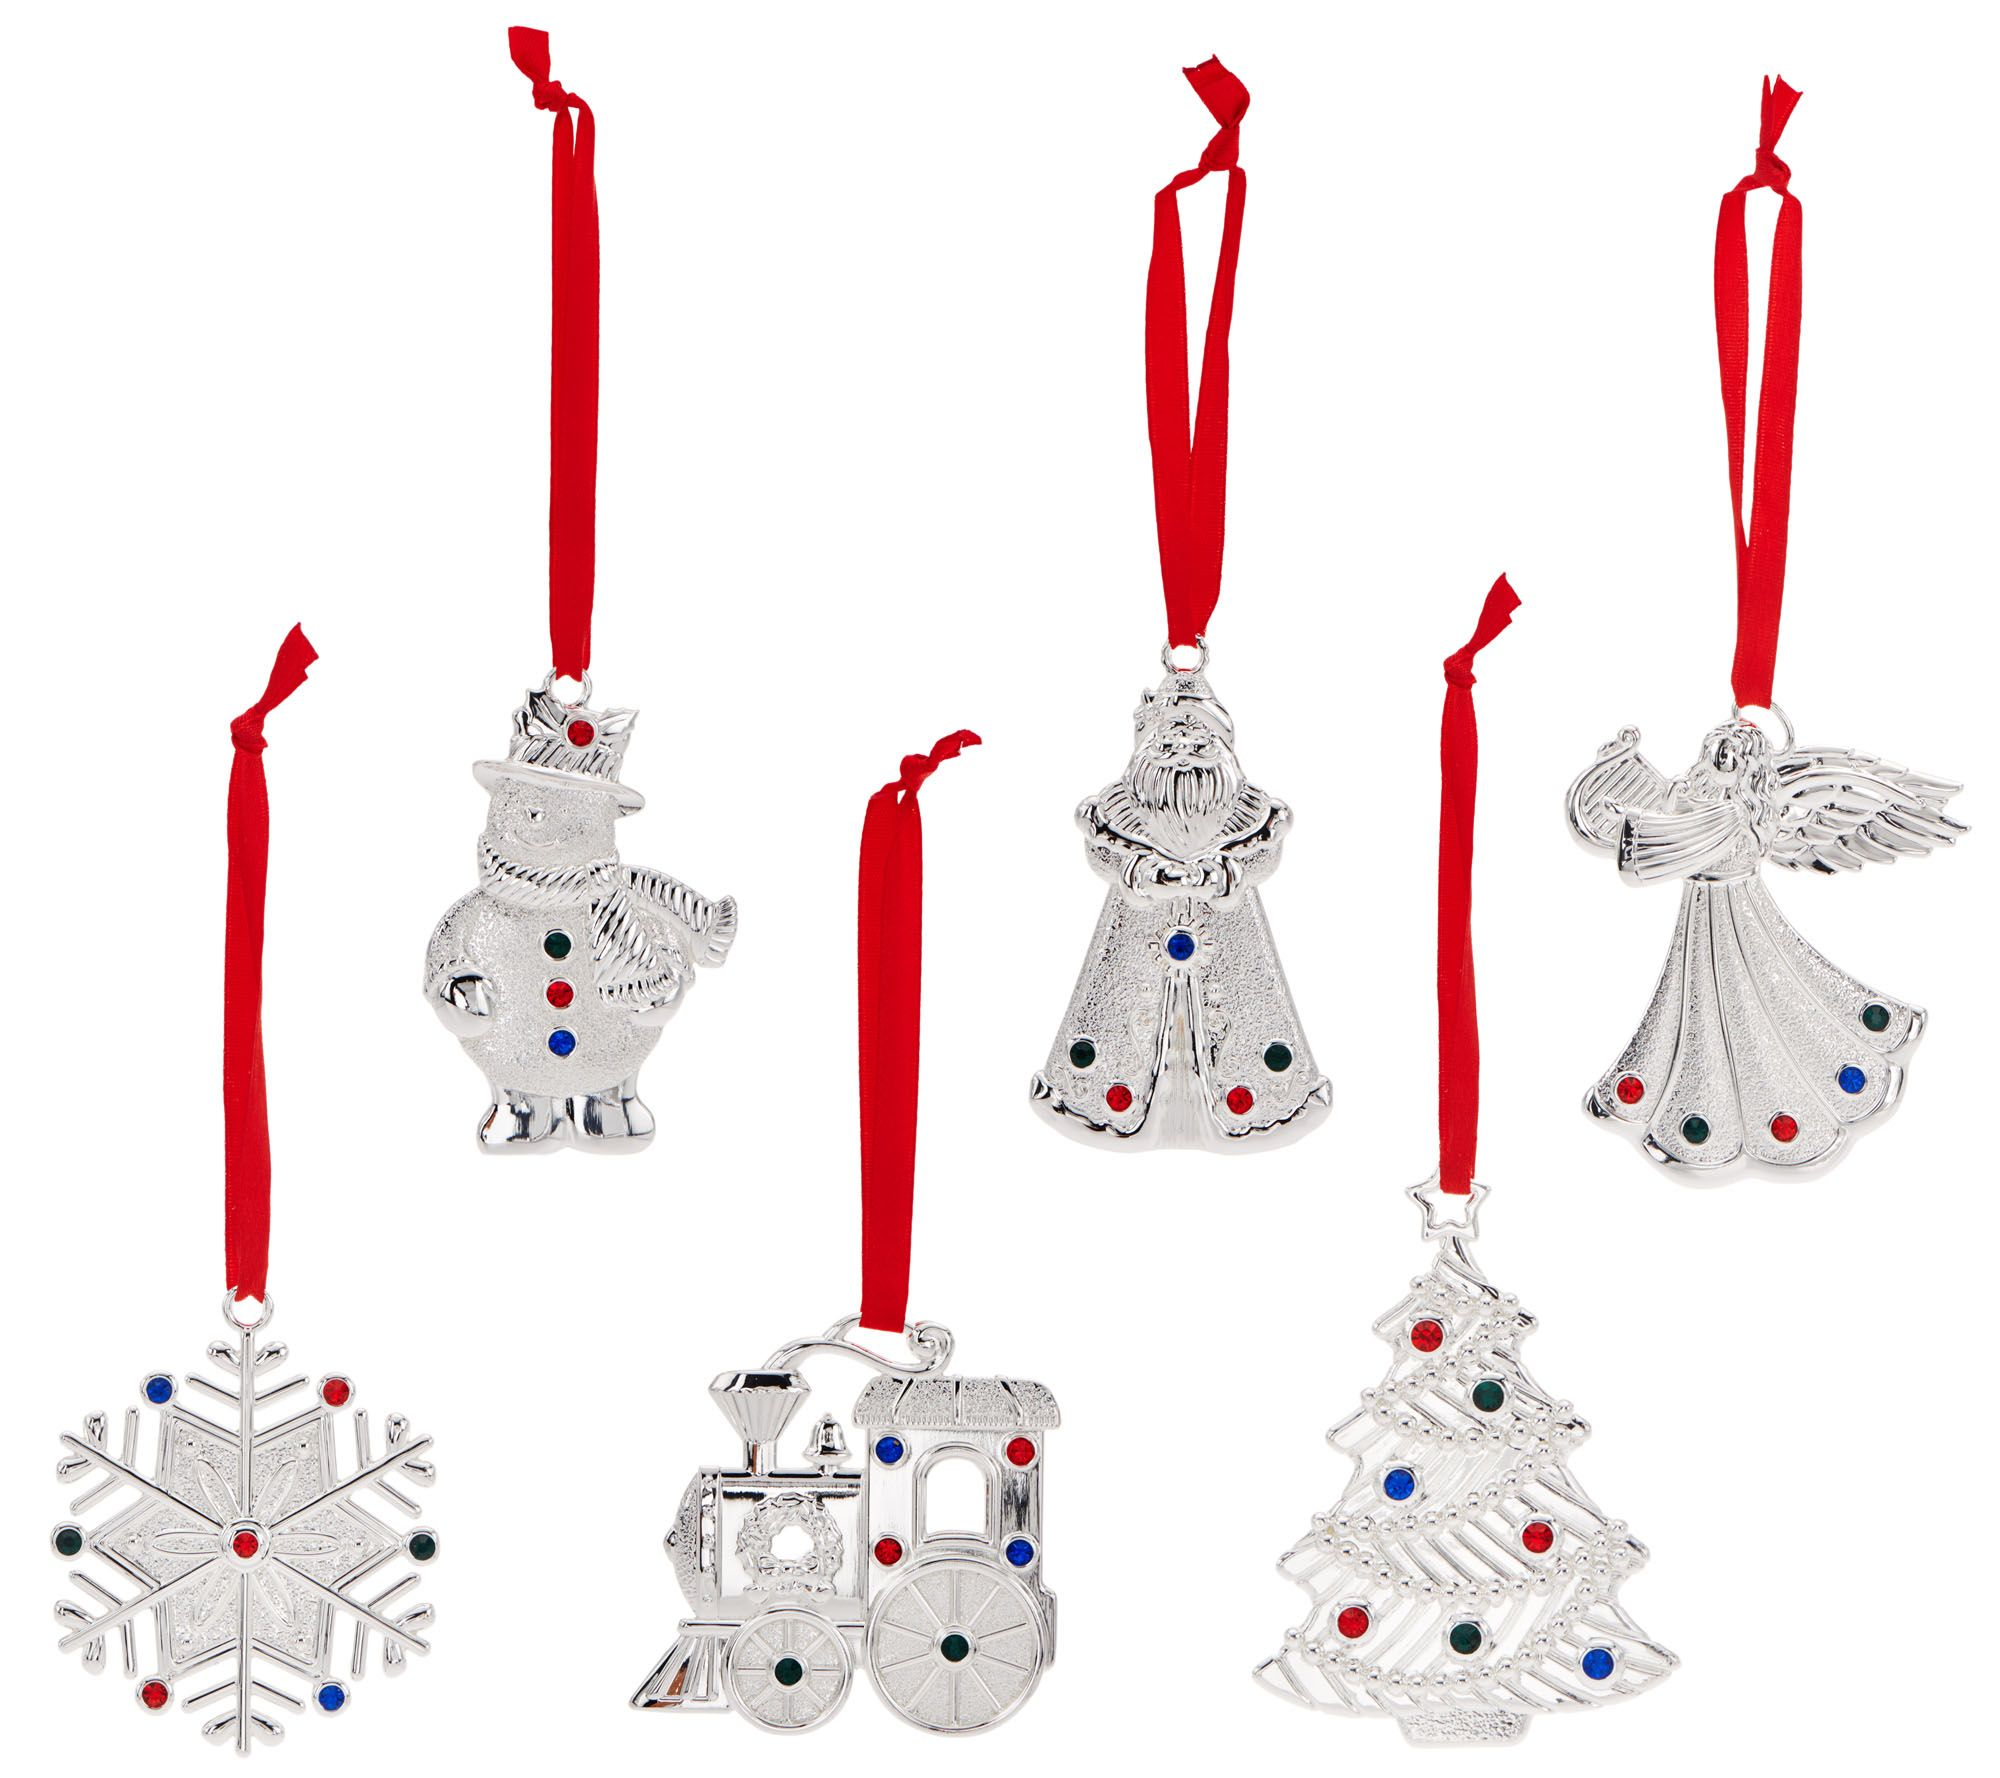 lenox set of 6 silver plated crystal gem charm ornaments in gift boxes page 1 qvccom - Silver Plated Christmas Tree Decorations